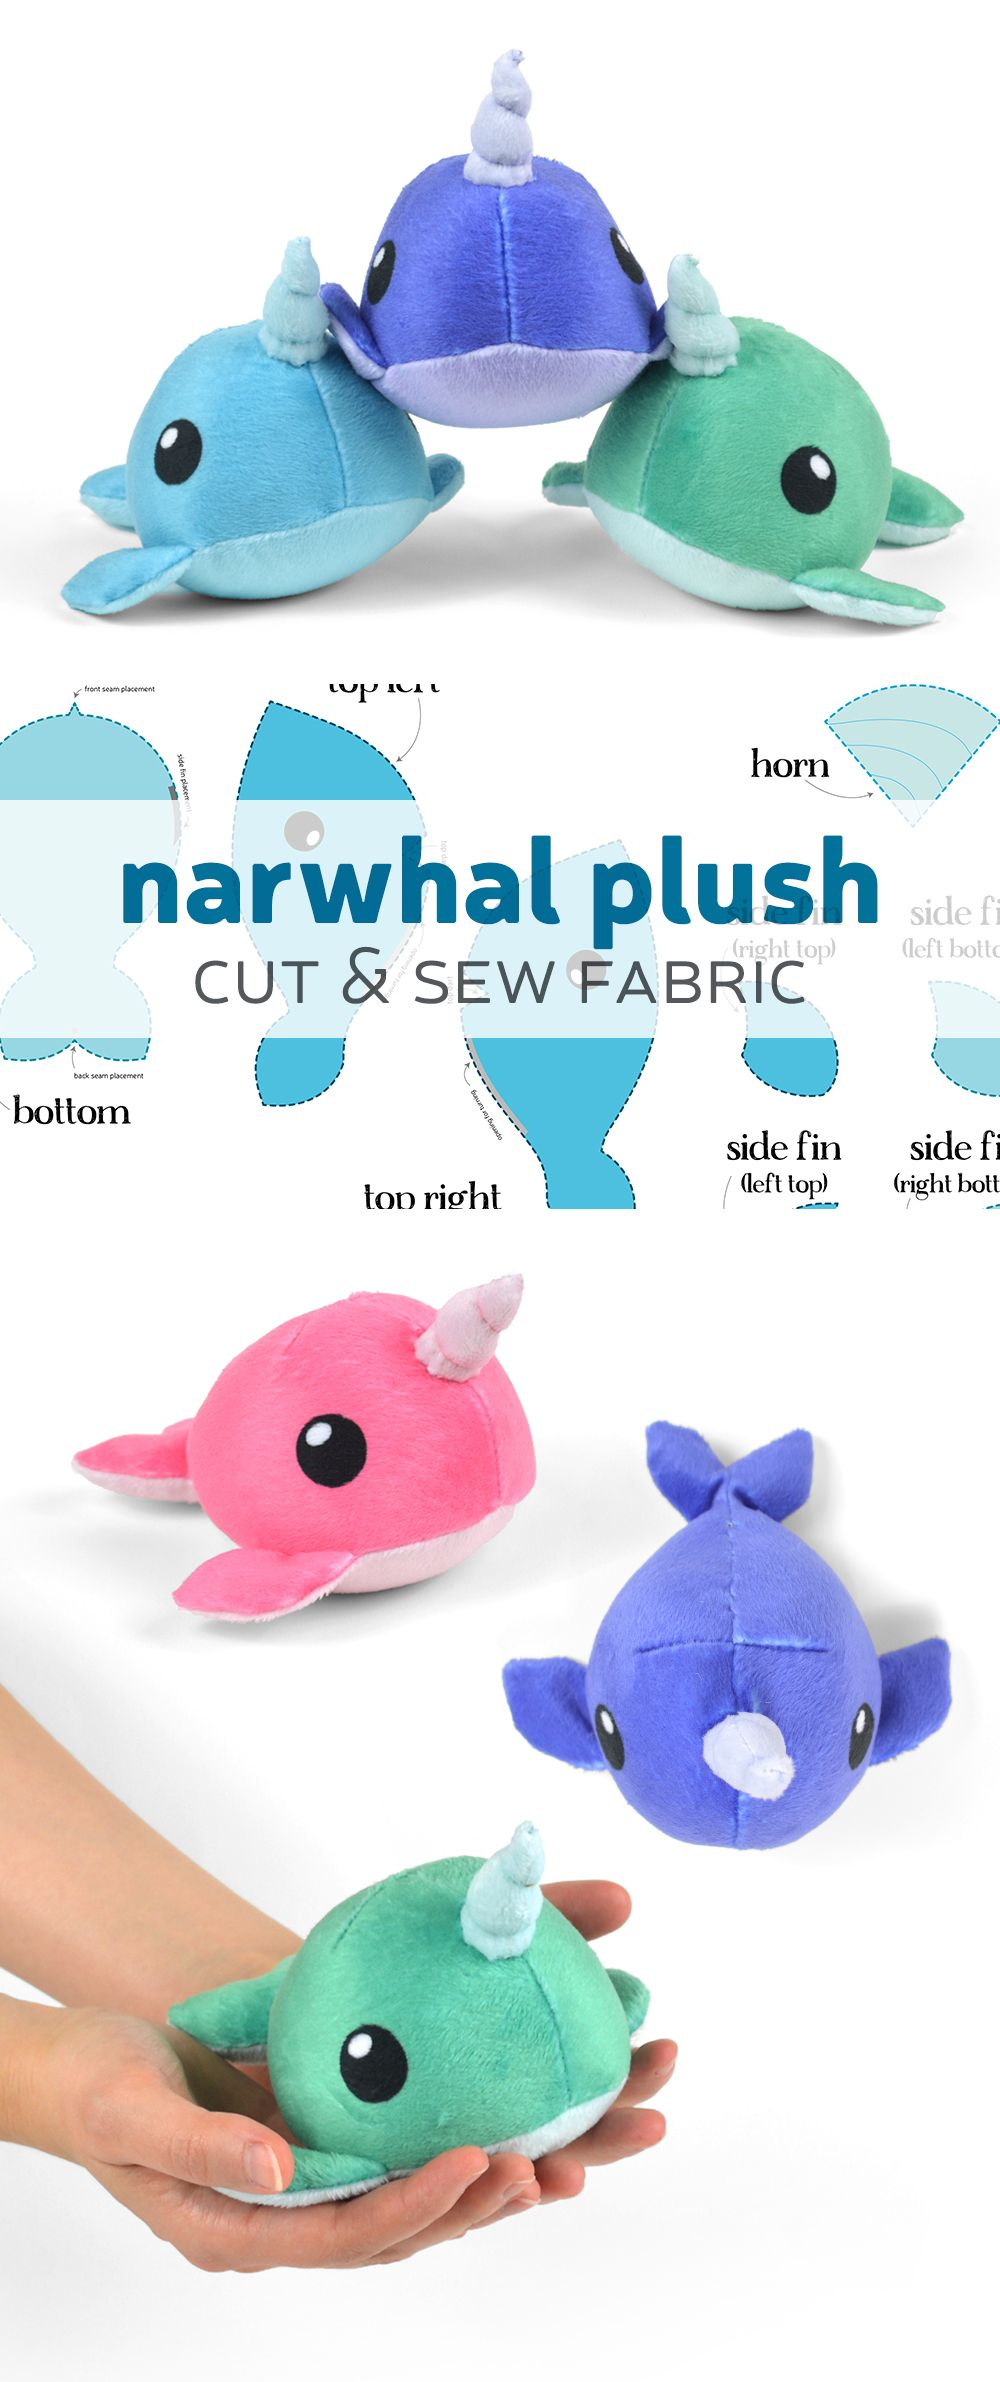 Cute tiny narwhal plush fabric kit from Spoonflower